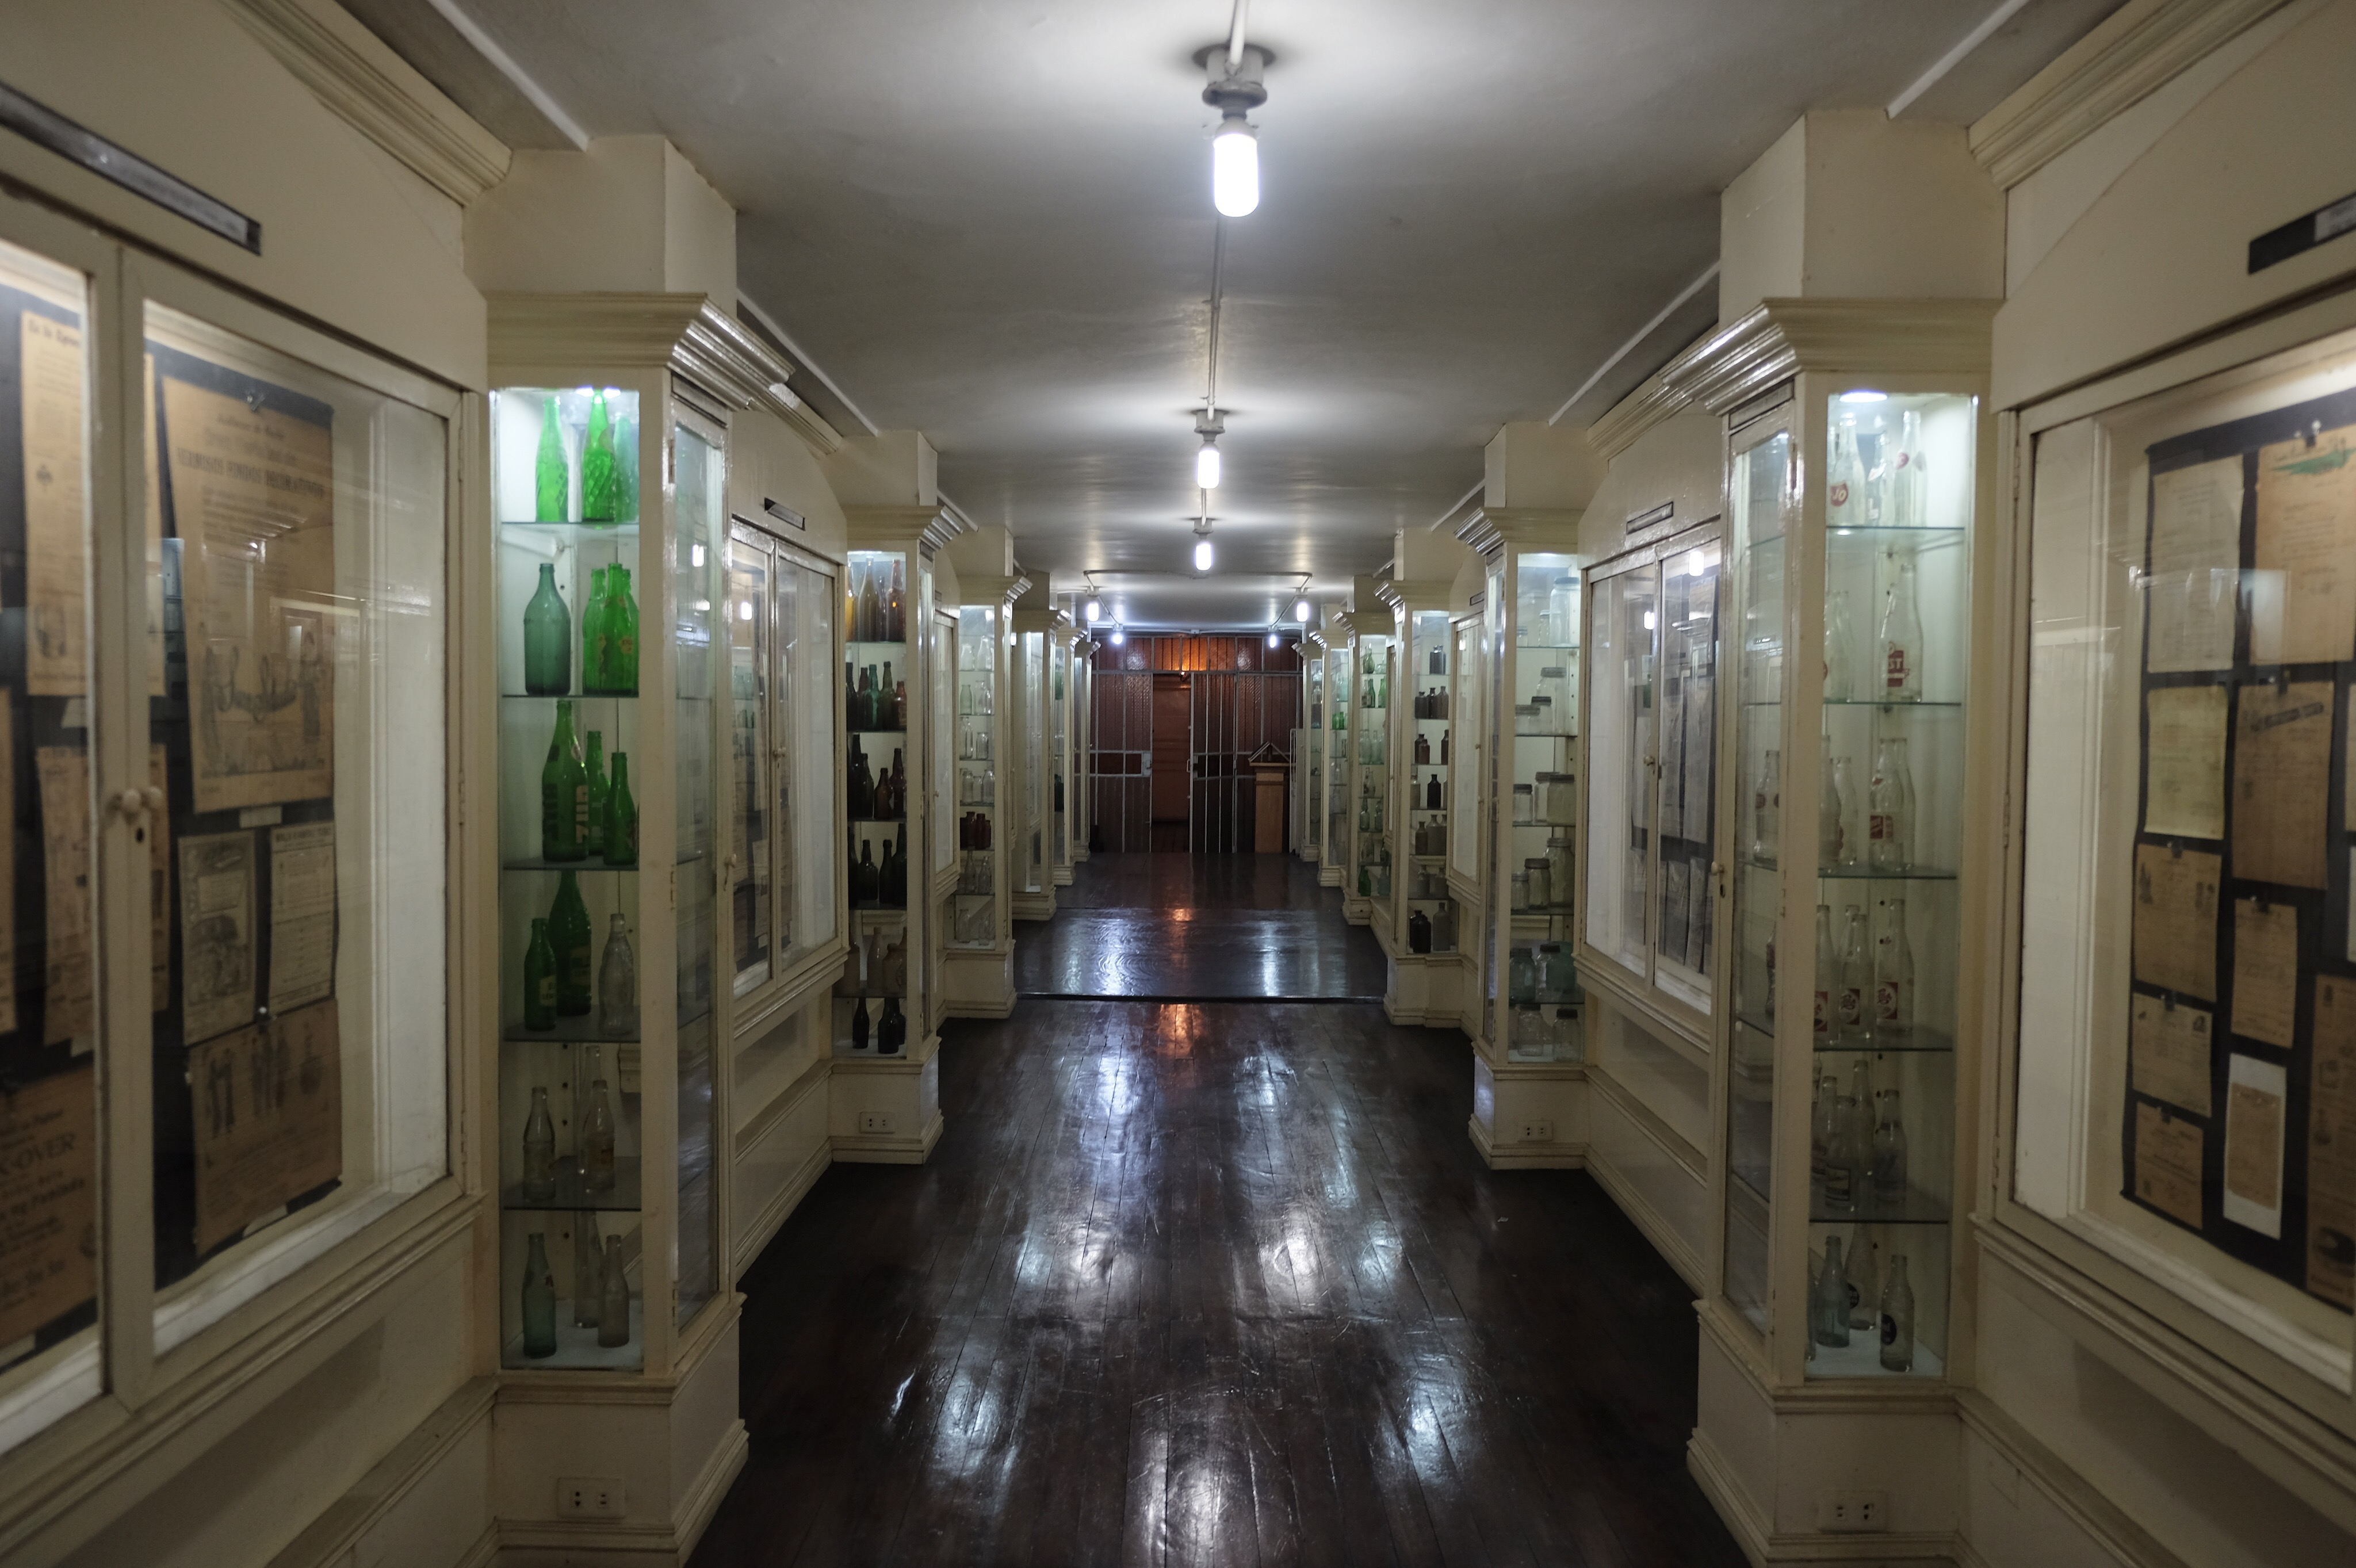 Calvo Museum Manila, Calvo Building: Top 5 Facts That You Need to Know